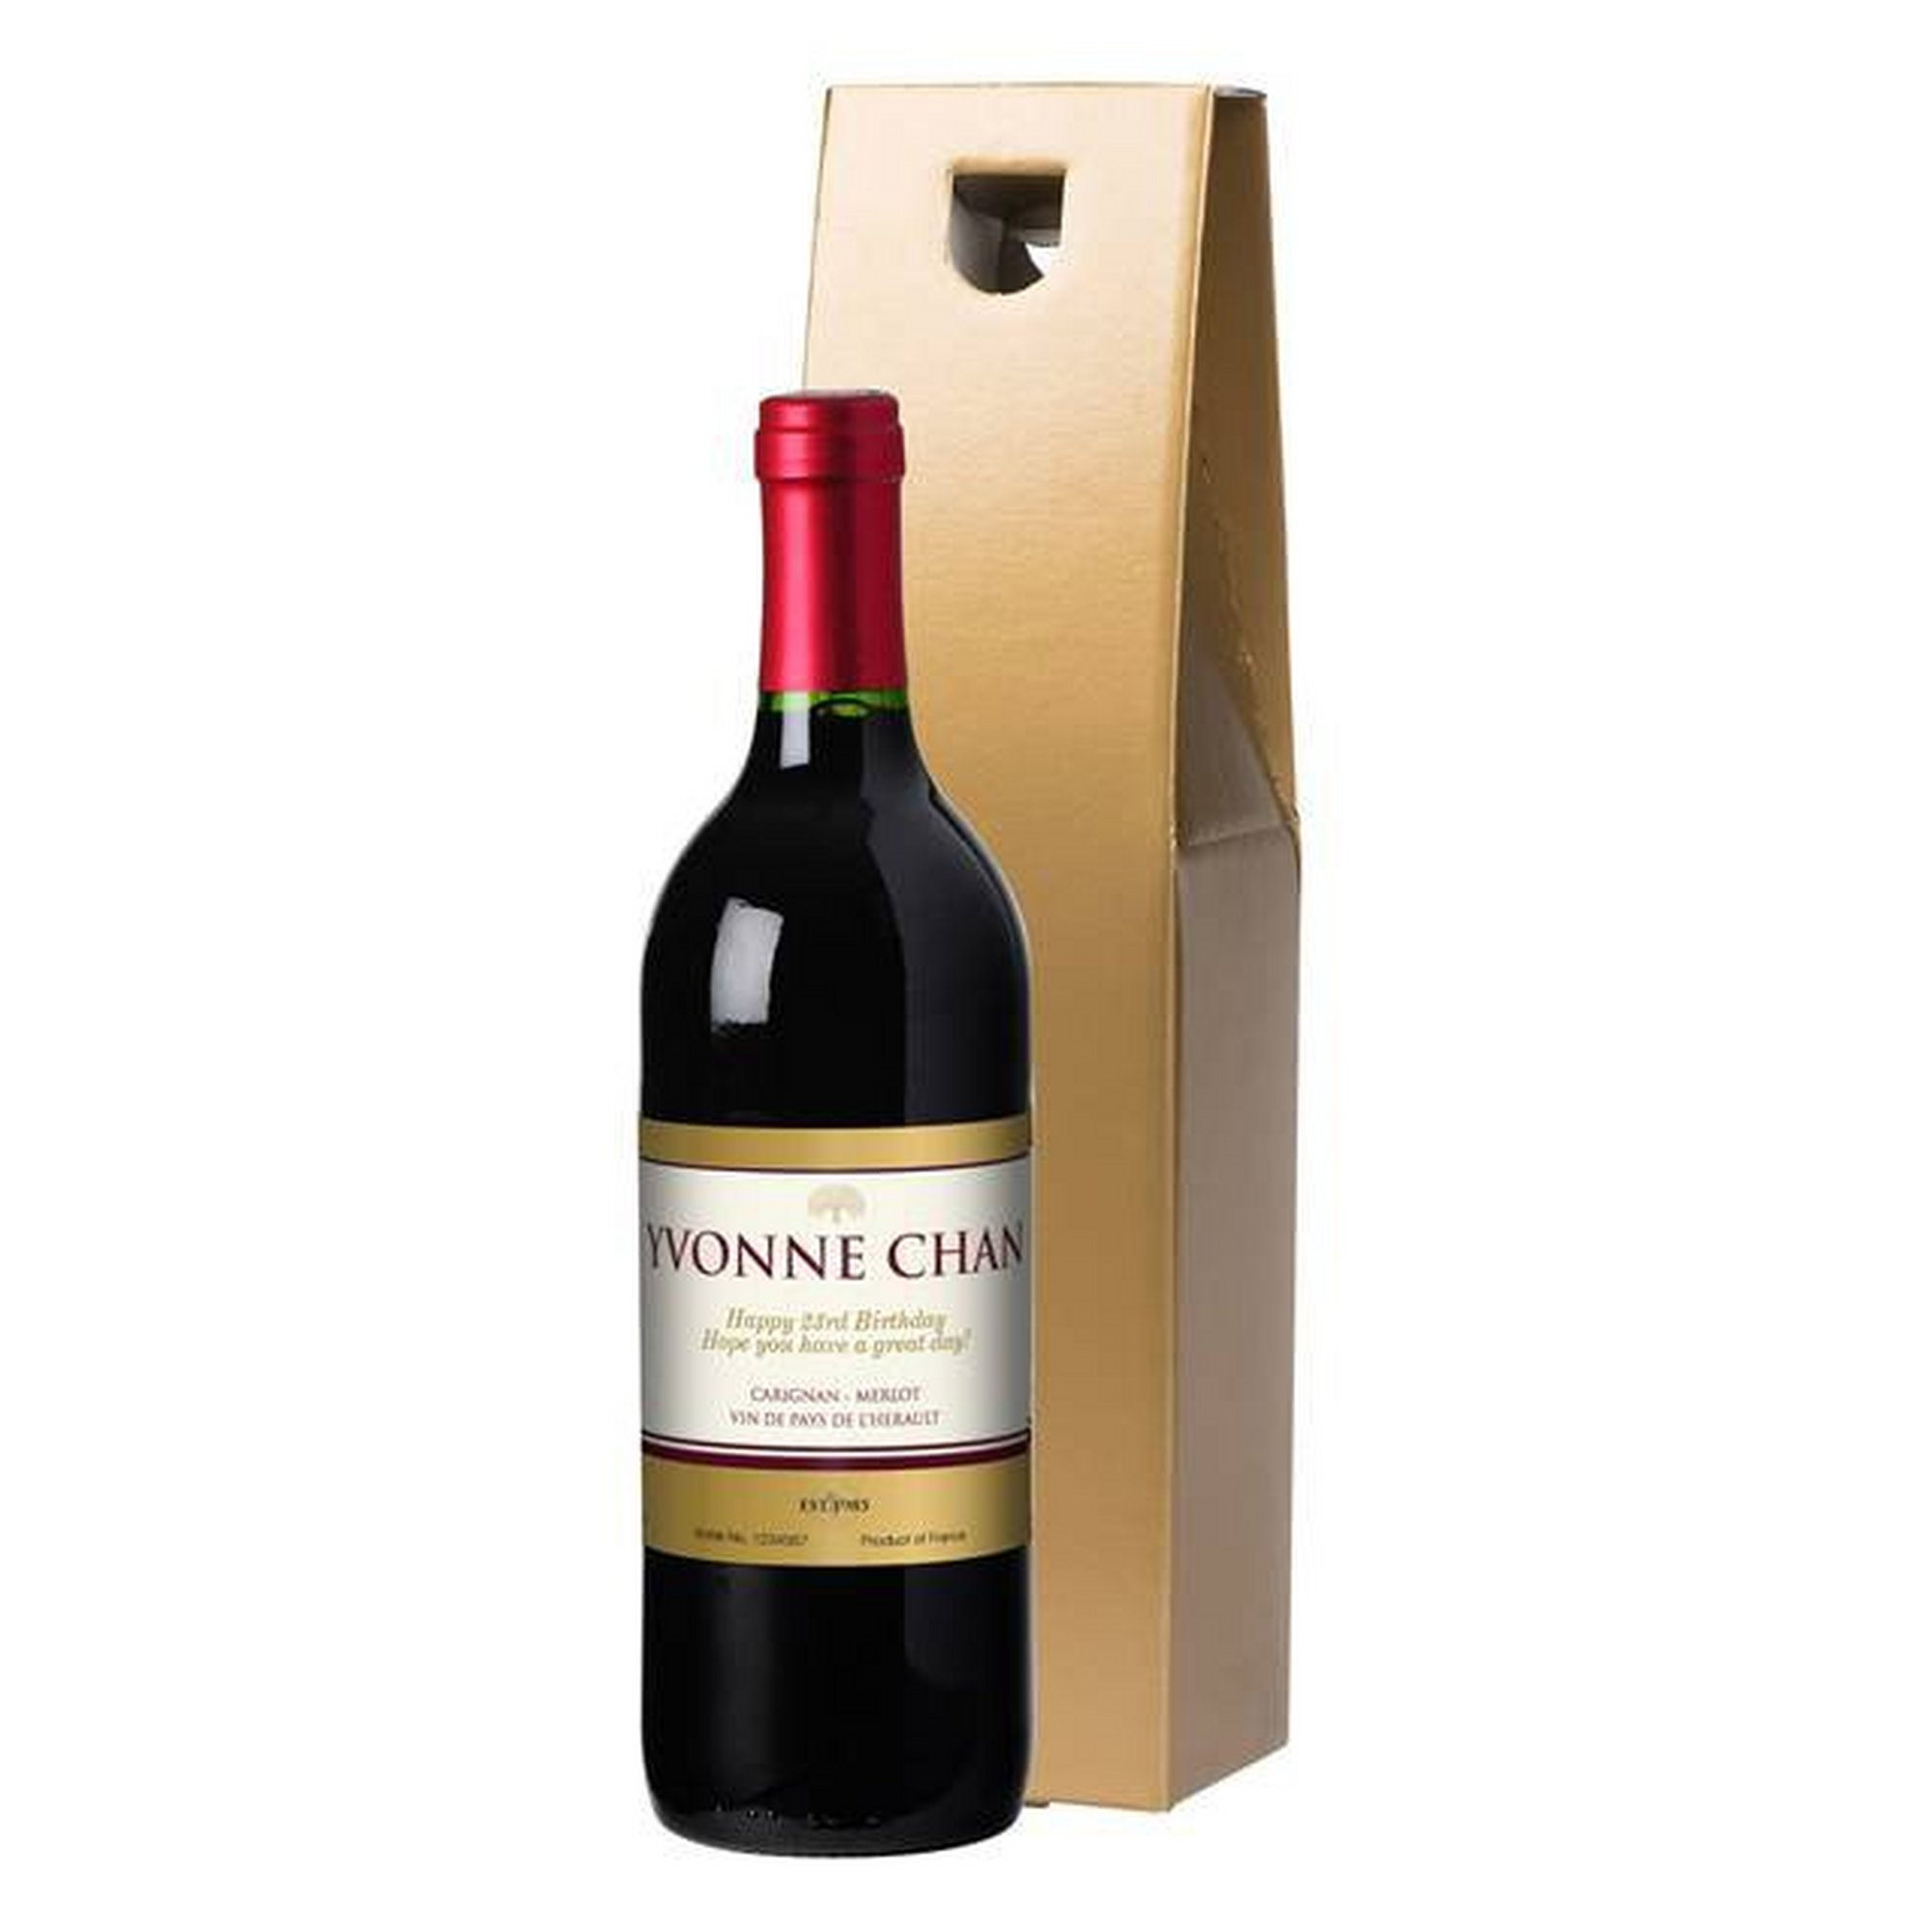 Image of Personalised Bottle of Red Wine with a Gold Label